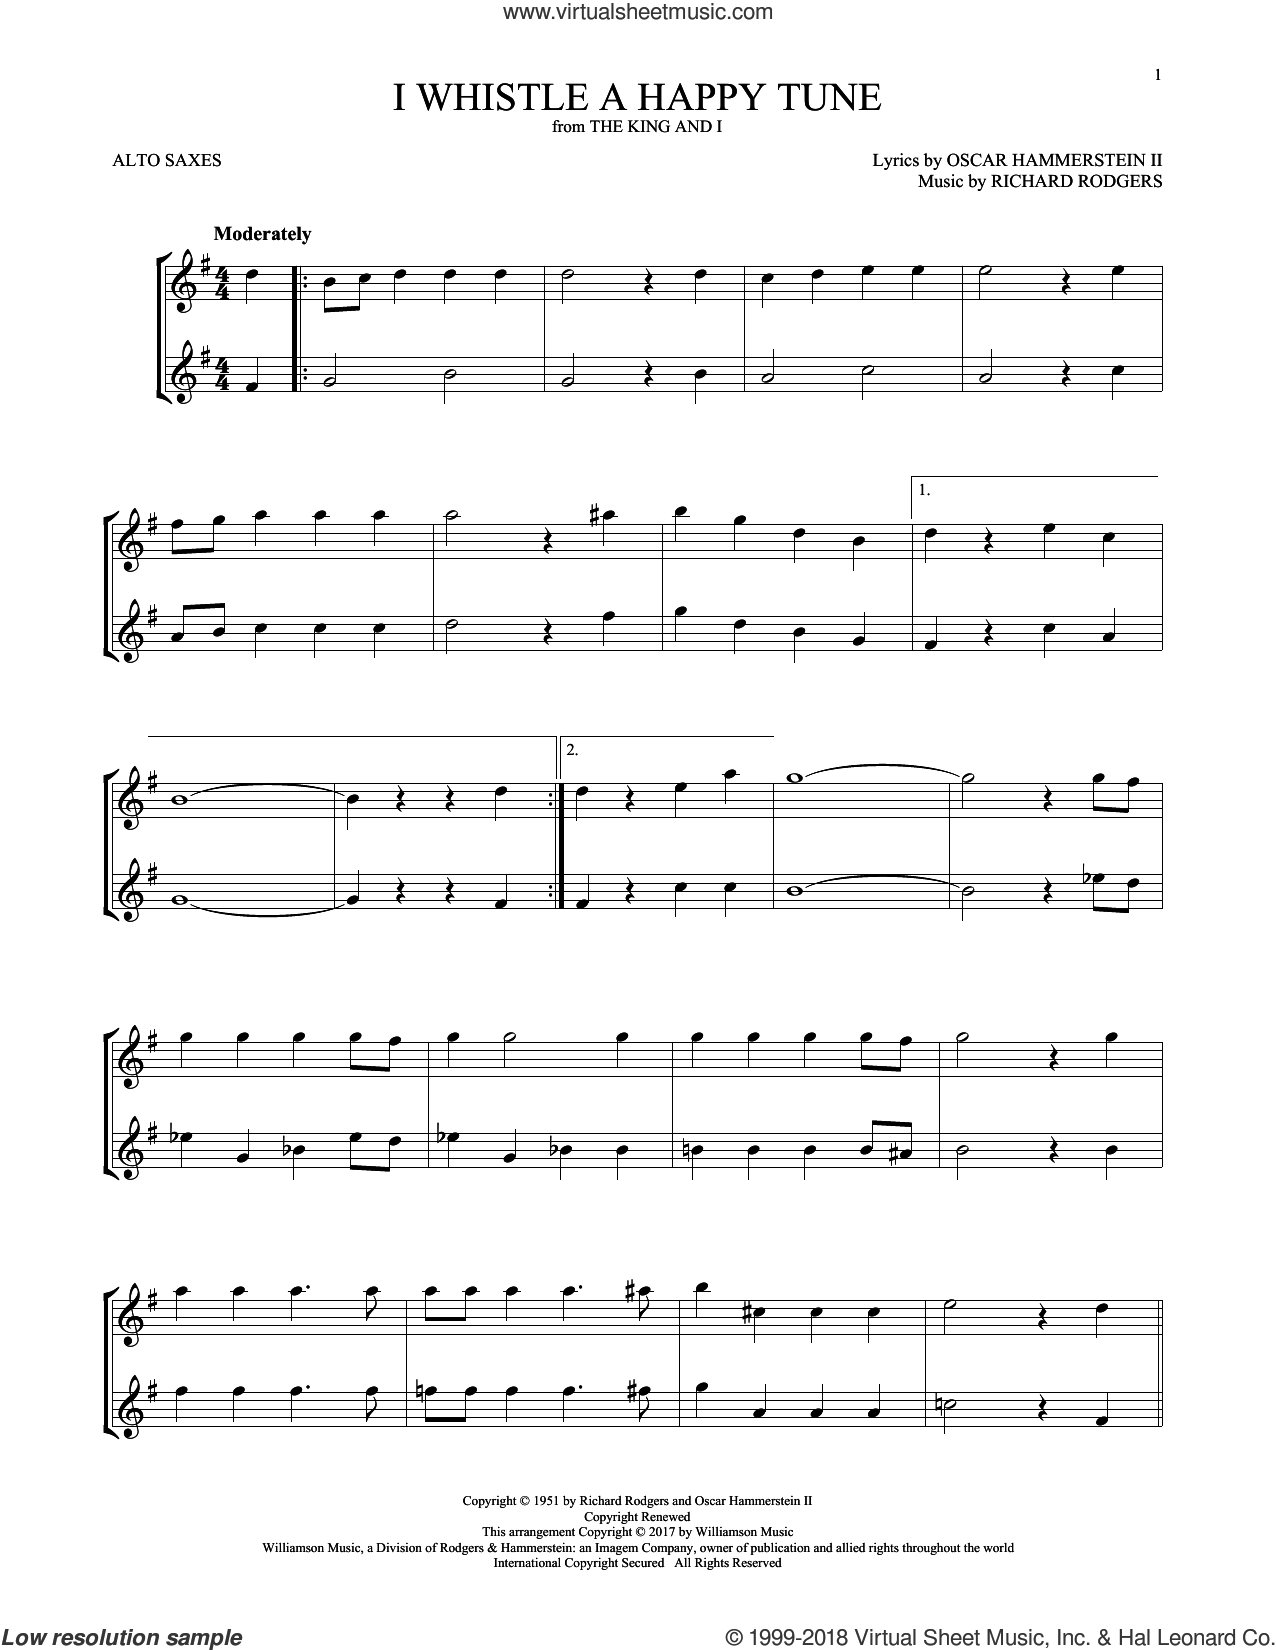 I Whistle A Happy Tune sheet music for two alto saxophones (duets) by Richard Rodgers, Oscar II Hammerstein and Rodgers & Hammerstein, intermediate skill level